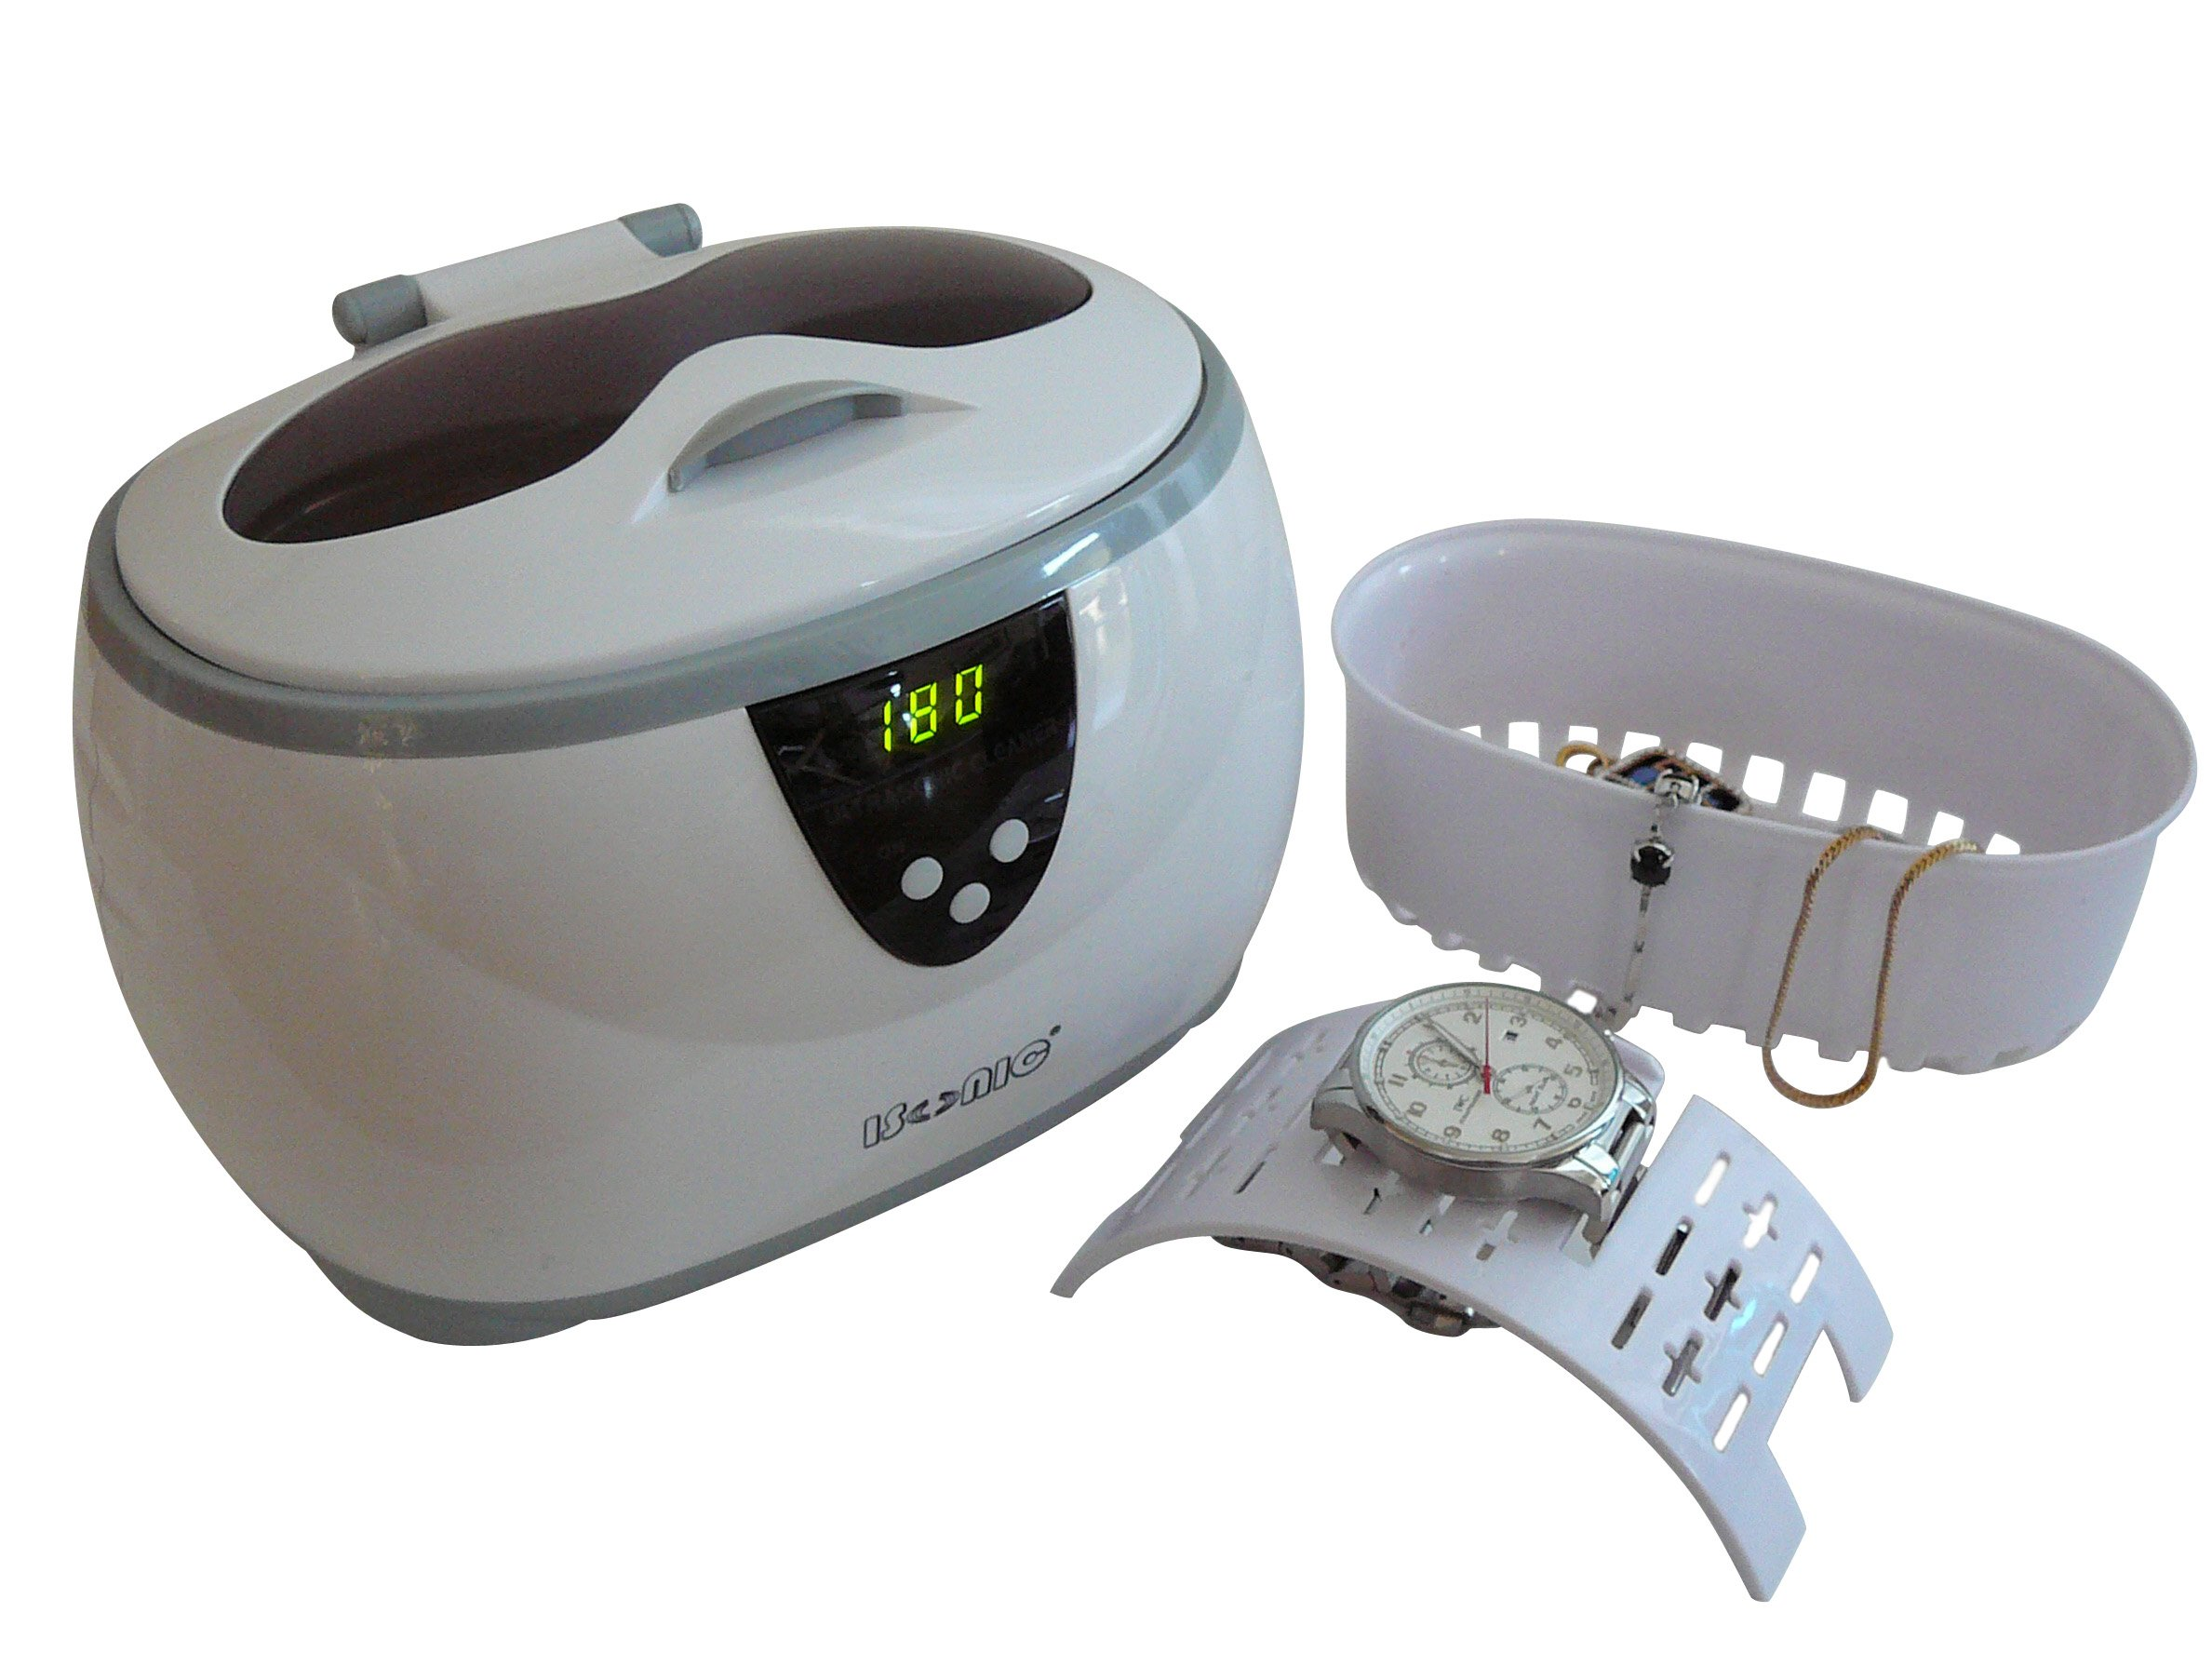 iSonic D3800A Digital Ultrasonic for Jewelry, Eyeglass, and Dentures Cleaner, 110V